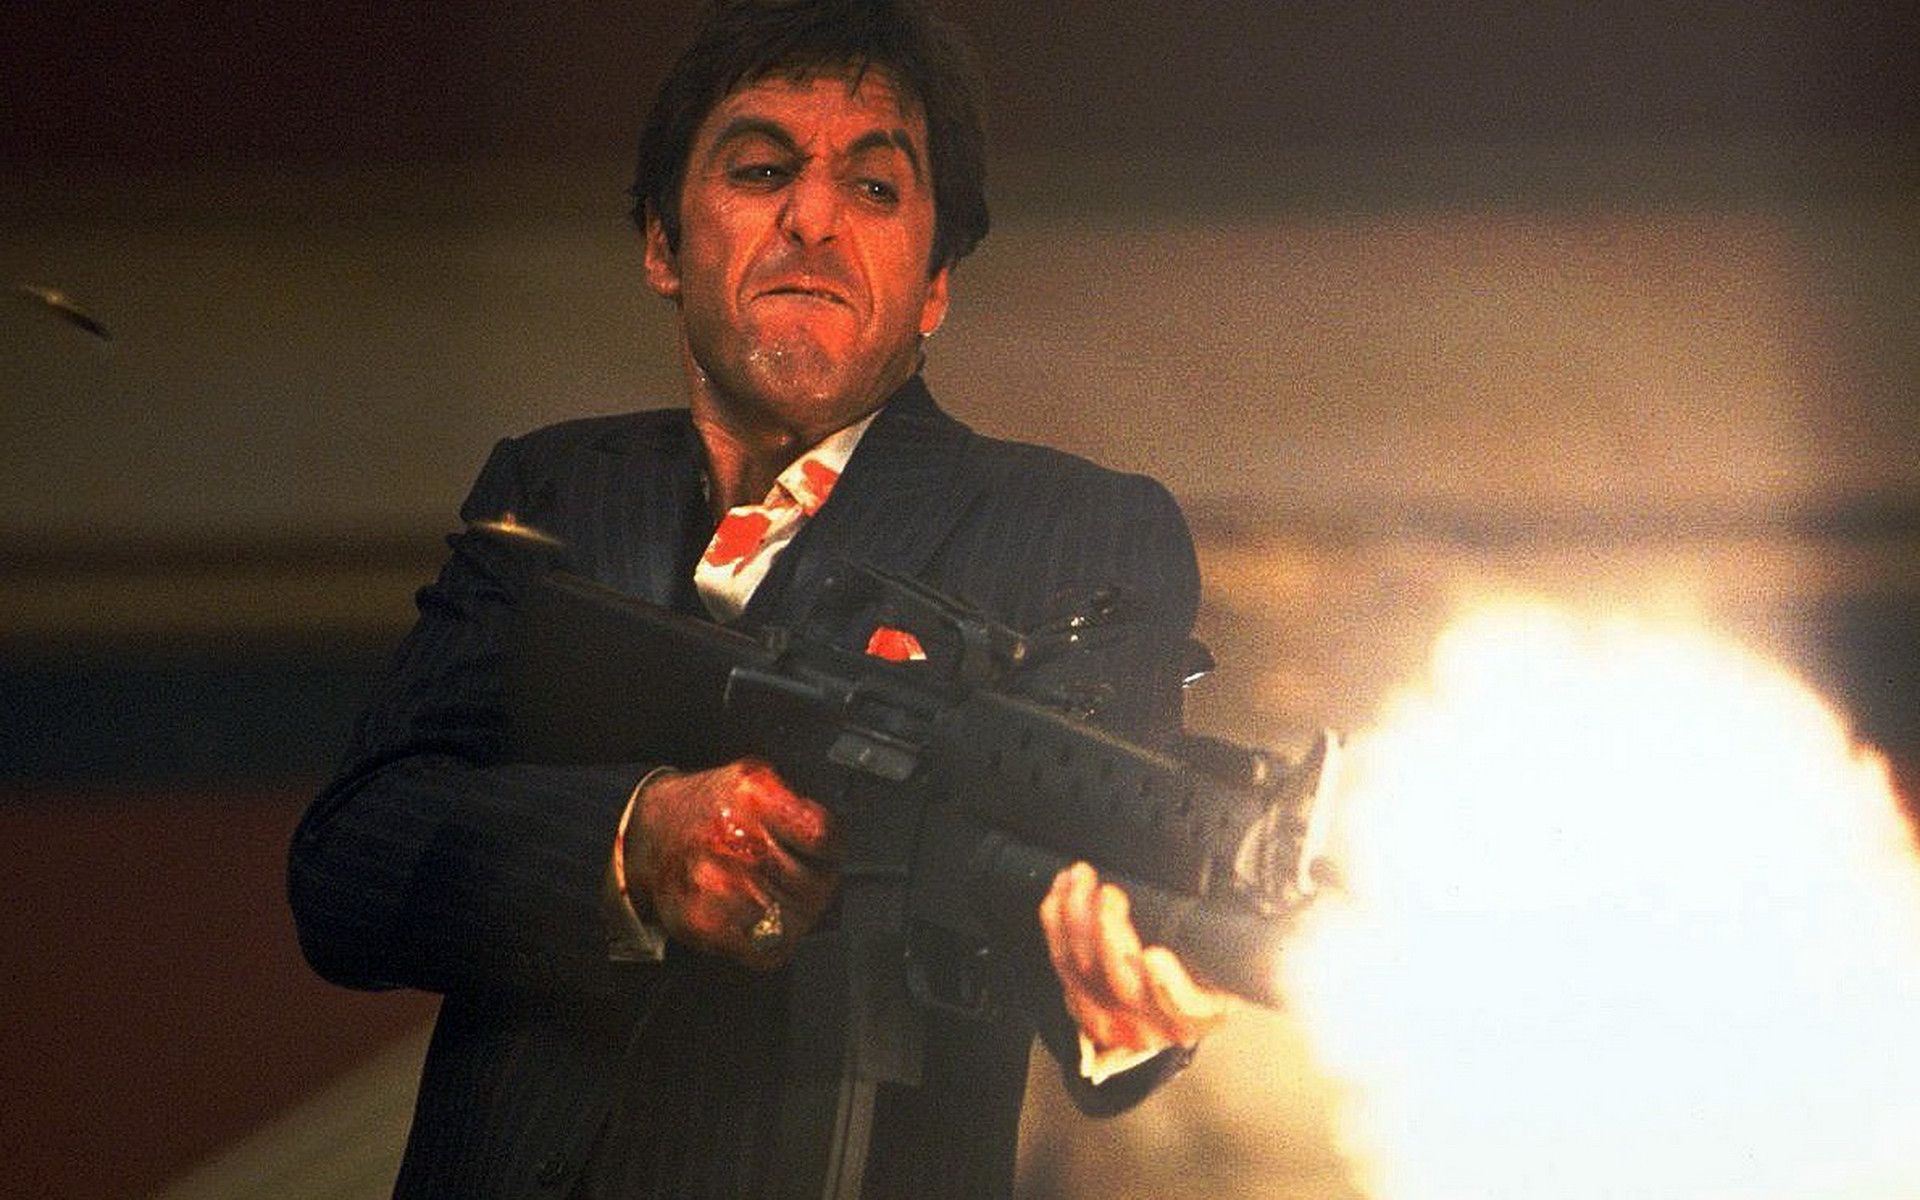 Scarface Wallpaper Hd 1920x1200